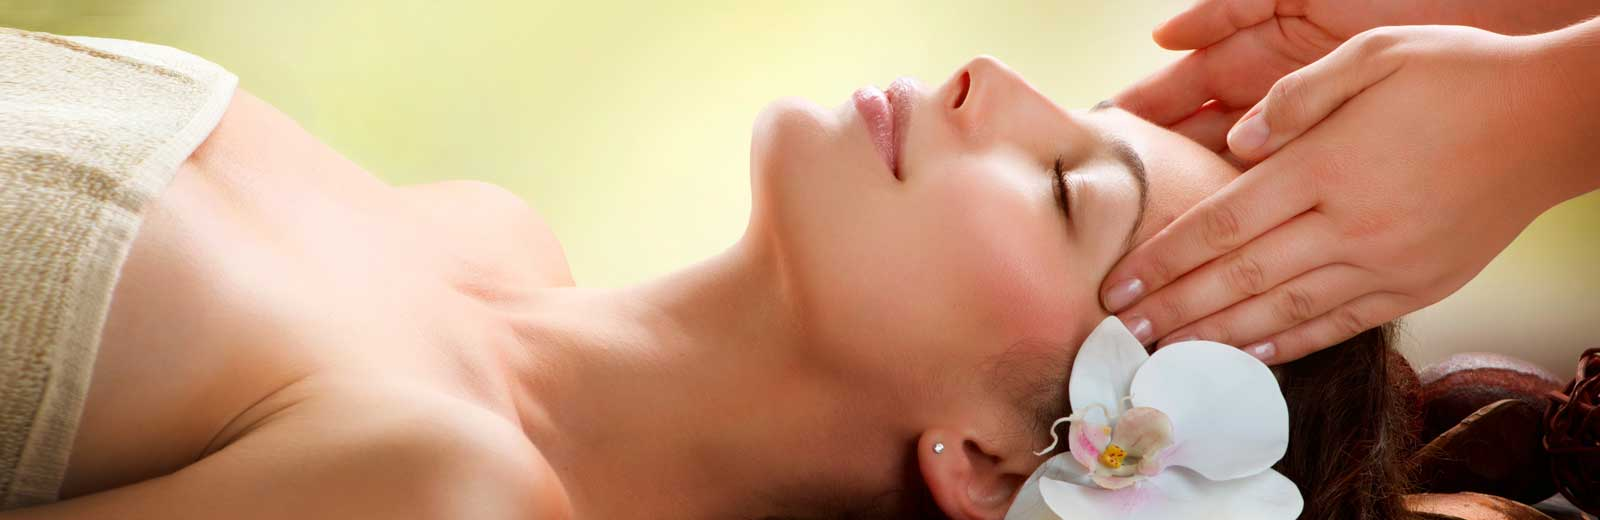 Beautiful woman with a fresh flower in her hair enjoying a massage.